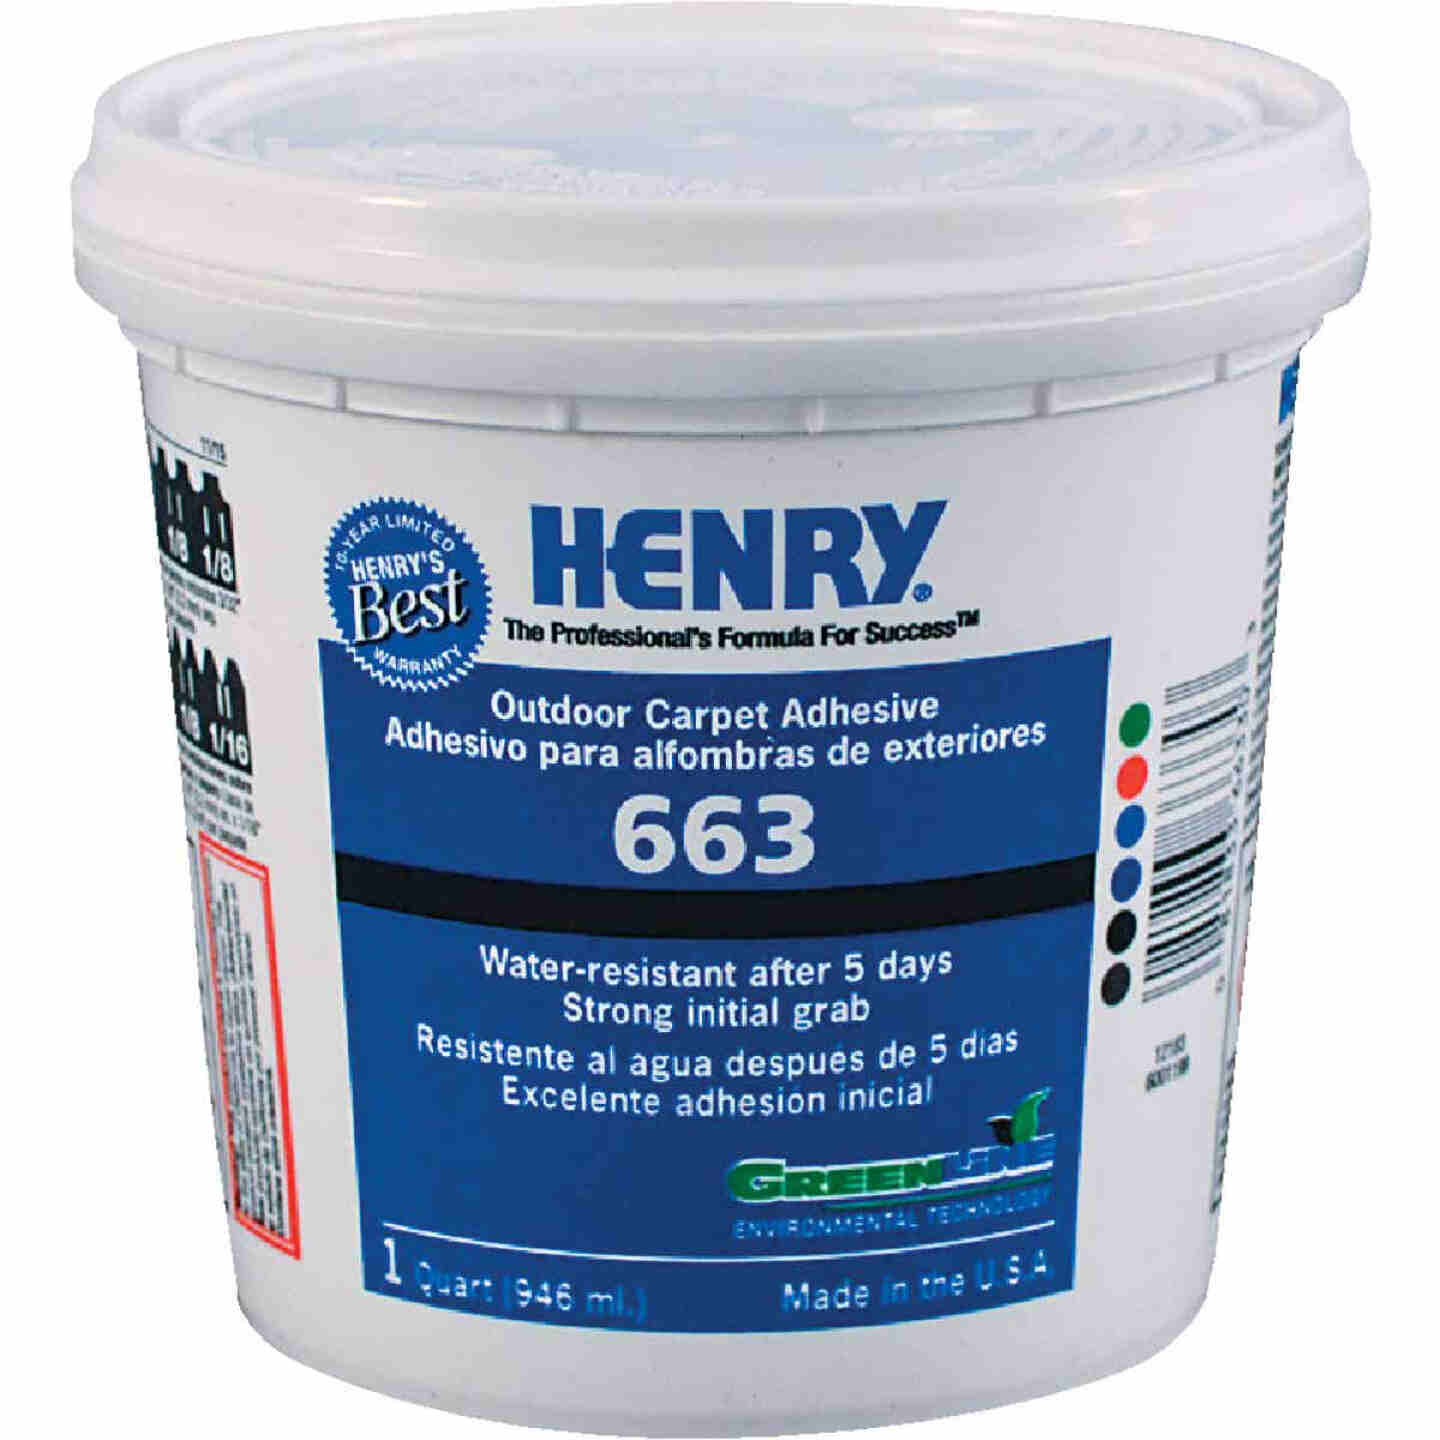 Henry Premium Outdoor Carpet Adhesive, Quart Image 1